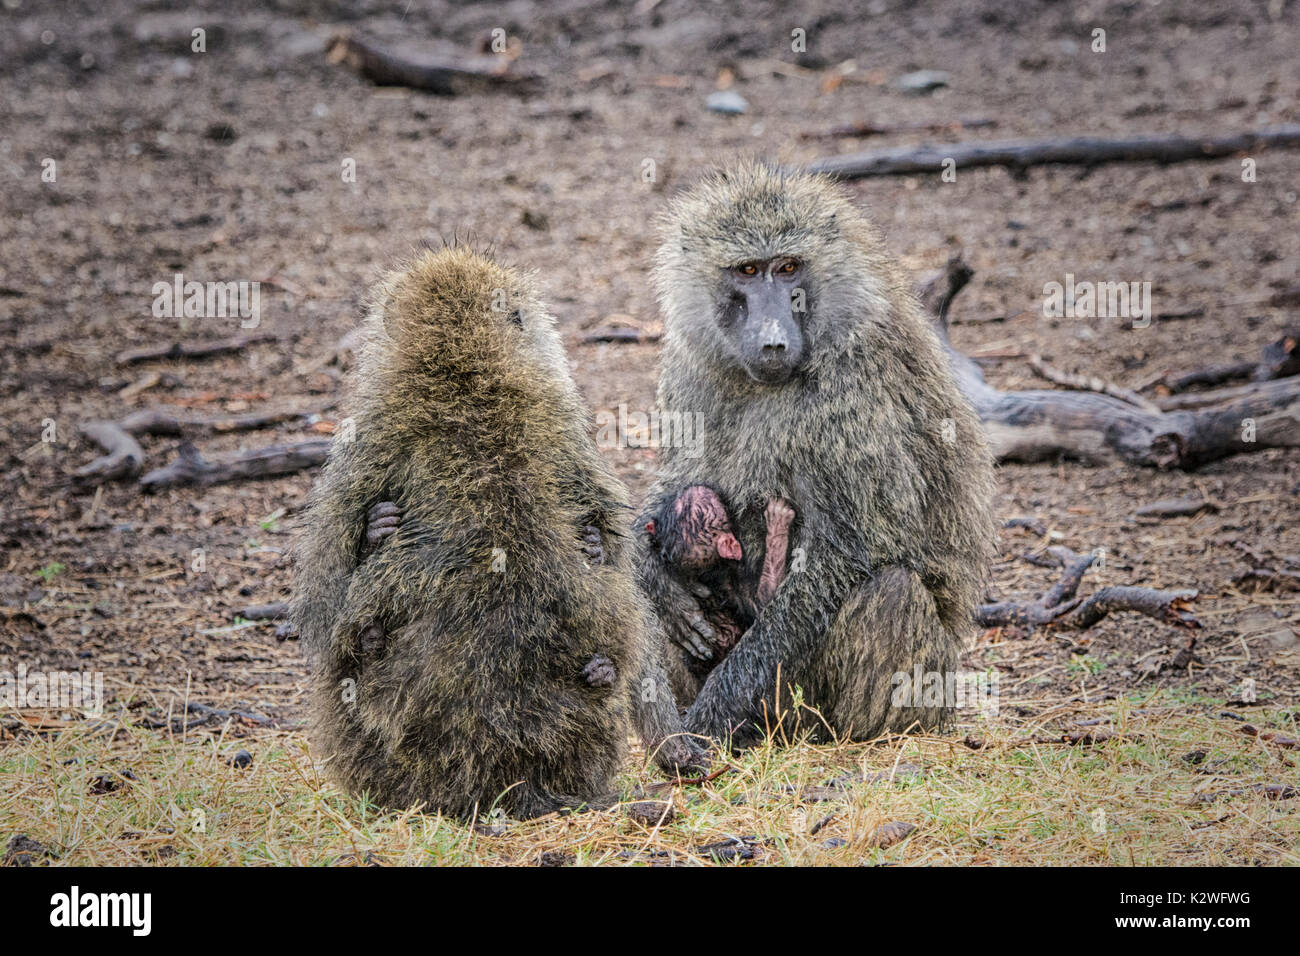 Two mother Olive Baboons, Papio anubis, holding tiny babies with each baby holding on with hands, Ol Pejeta Conservancy, Northern Kenya, East Africa Stock Photo